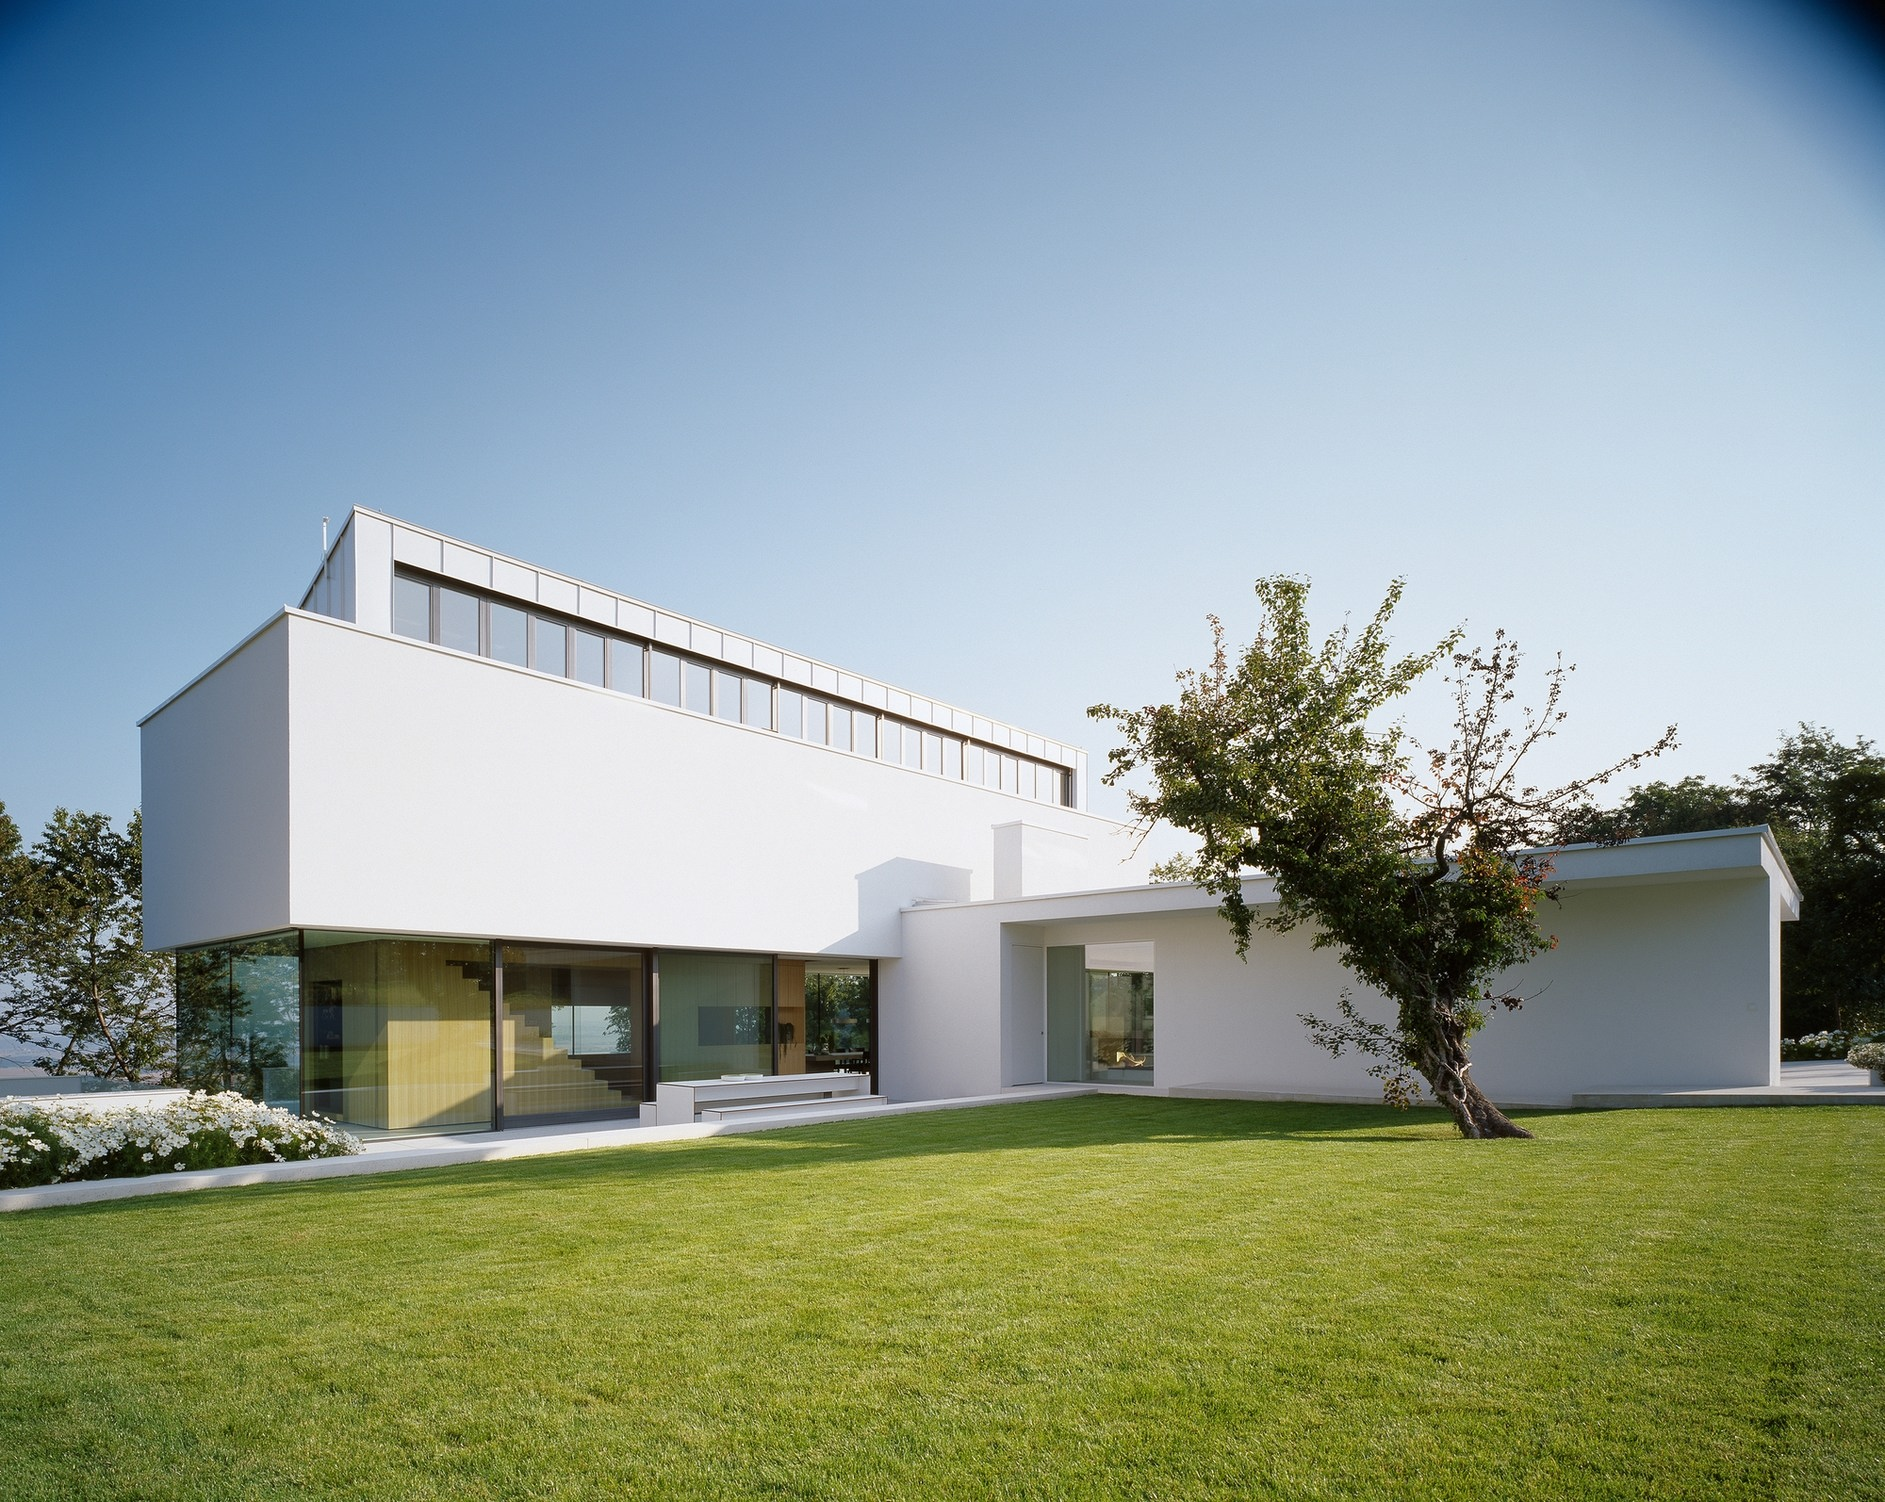 House p by philipp architekten karmatrendz - Philipp architekten ...